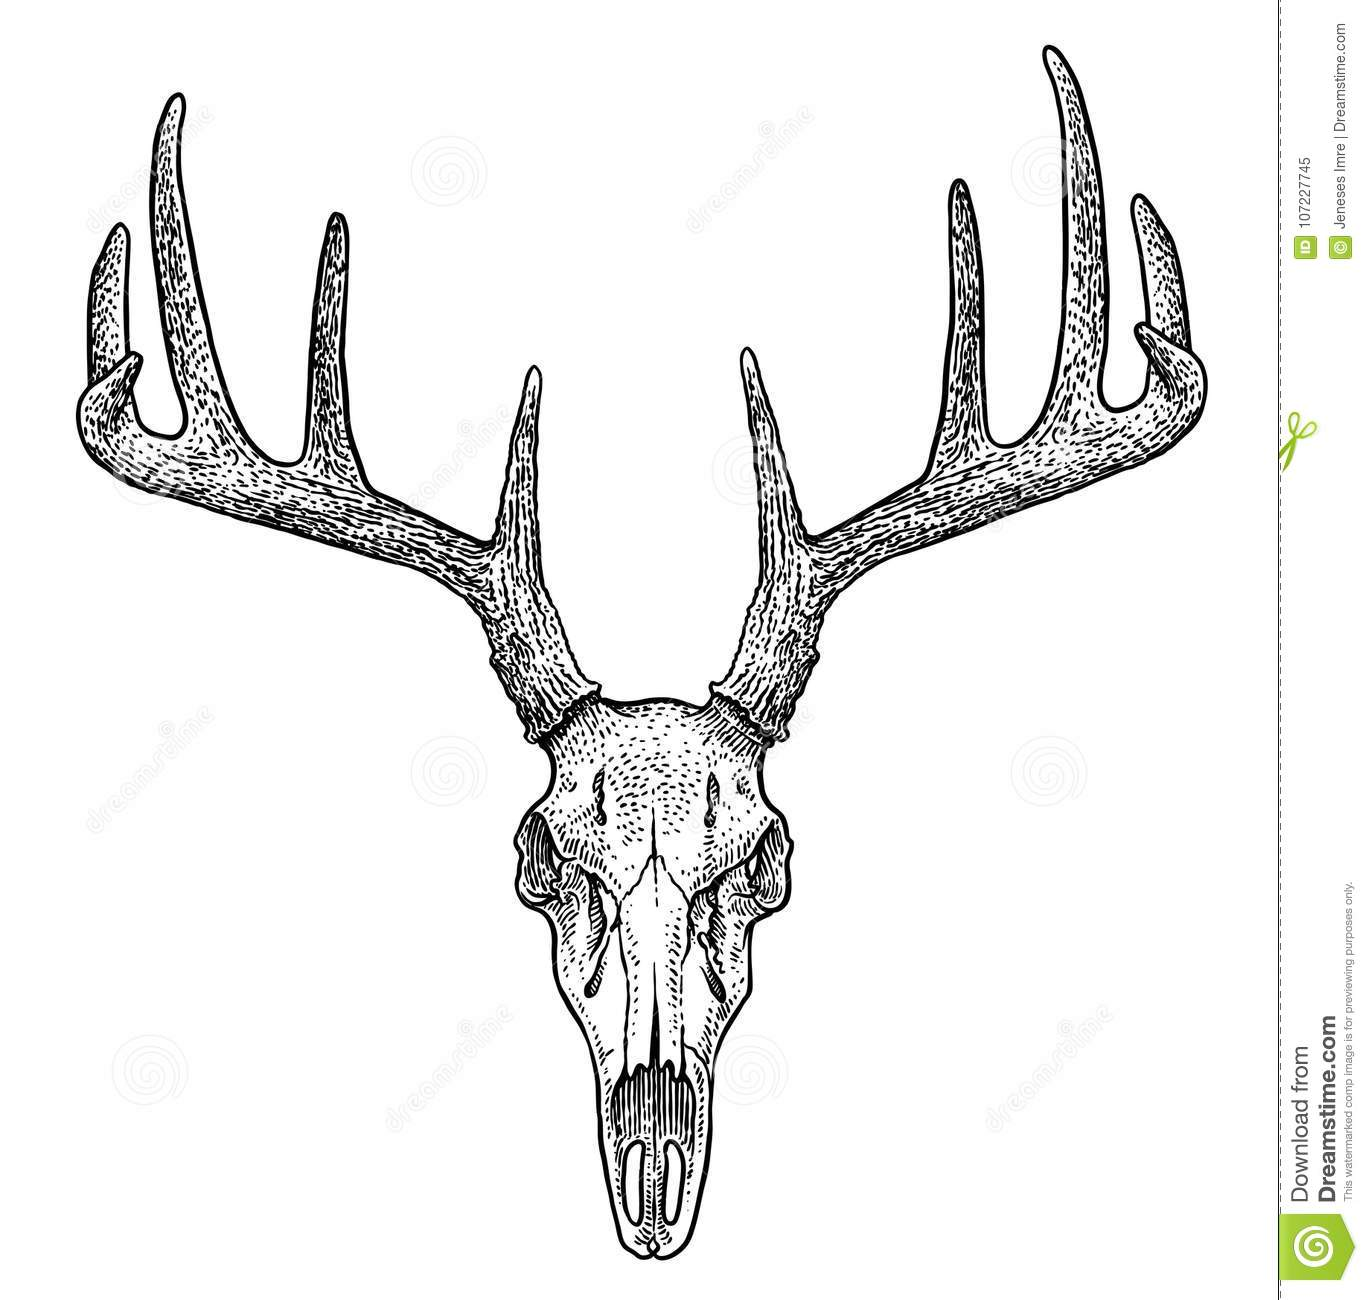 Line Drawings Of Animals Deer : Deer skull illustration drawing engraving ink line art